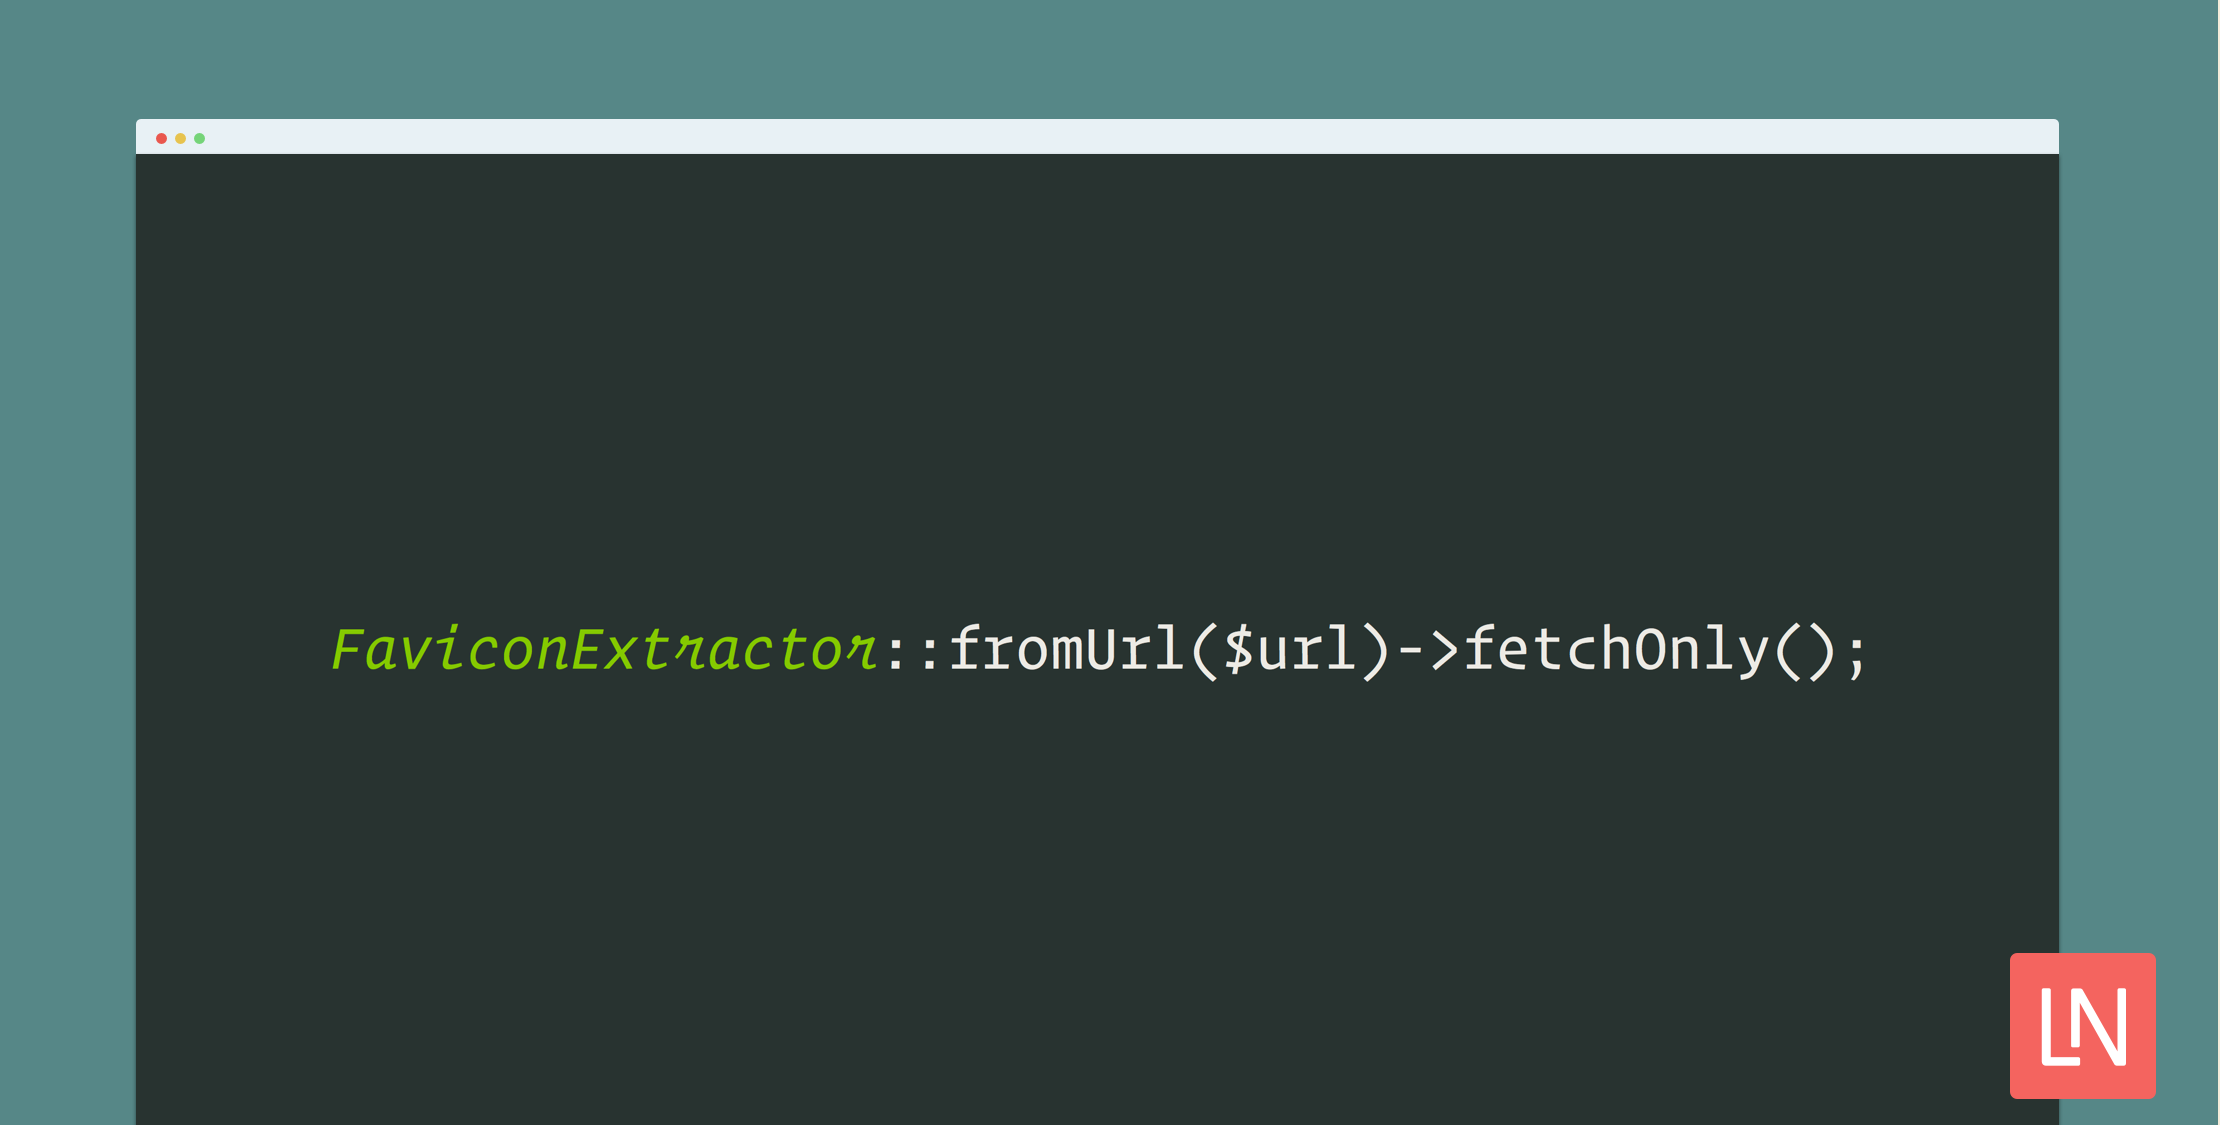 laravel-favicon-extractor.png